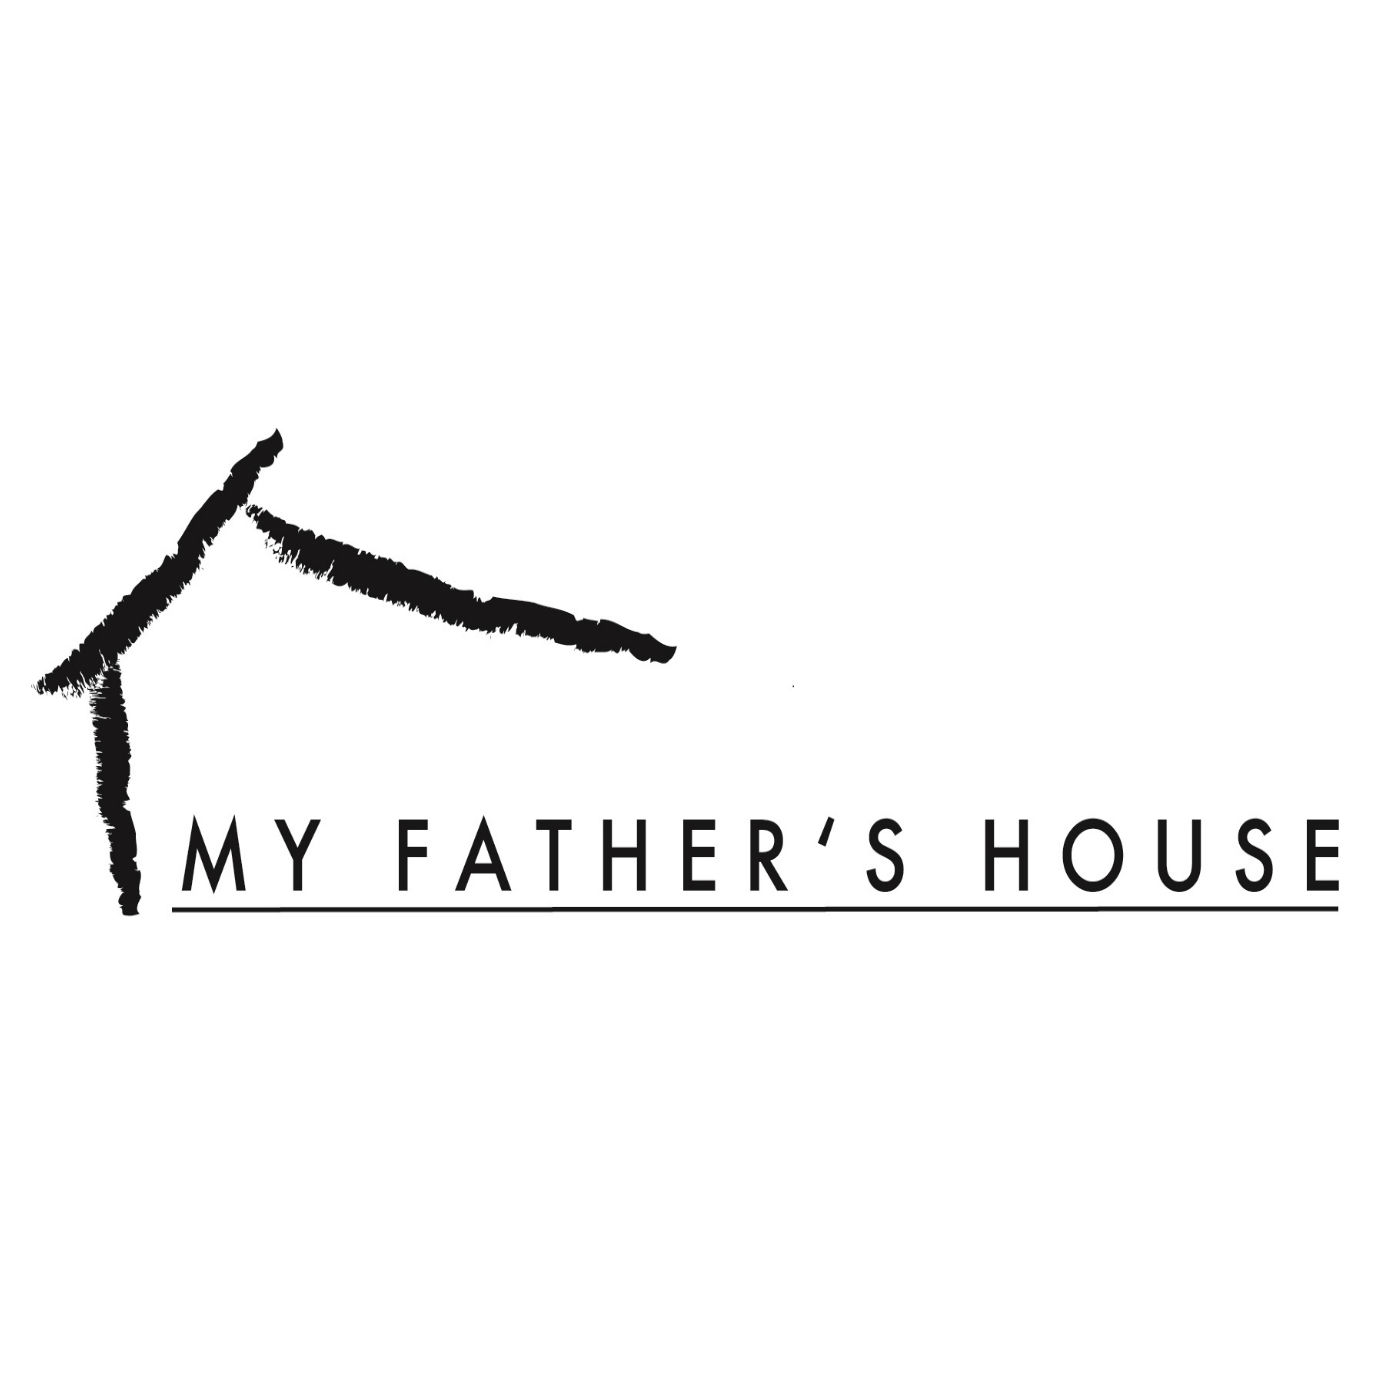 Sermons - My Father's House